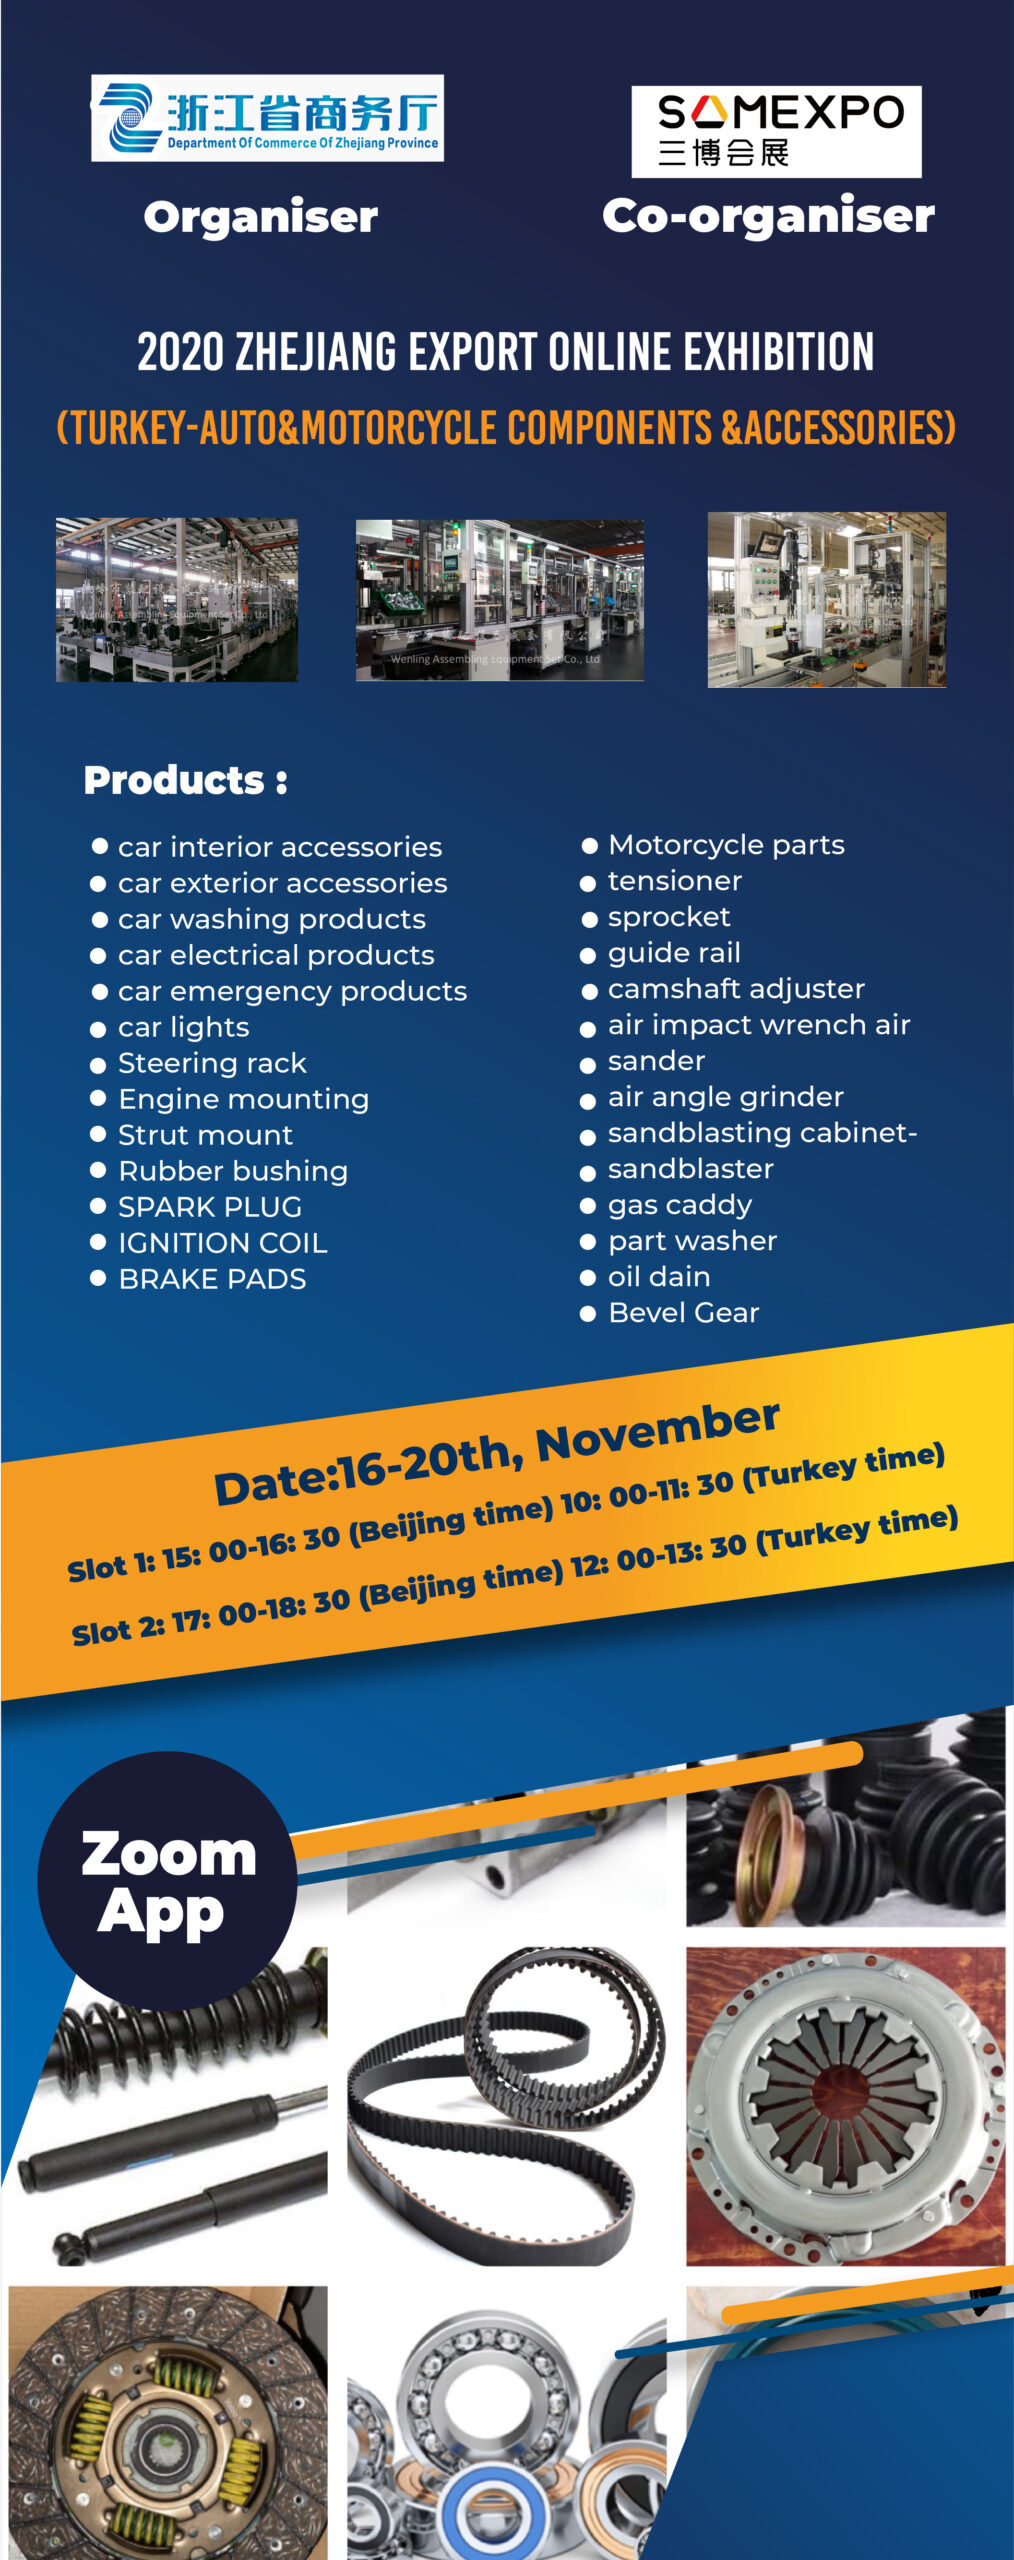 2020 ZHEJIANG EXPORT ONLINE FAIR (Turkey-Auto&Motorcycle Components &Accessories)